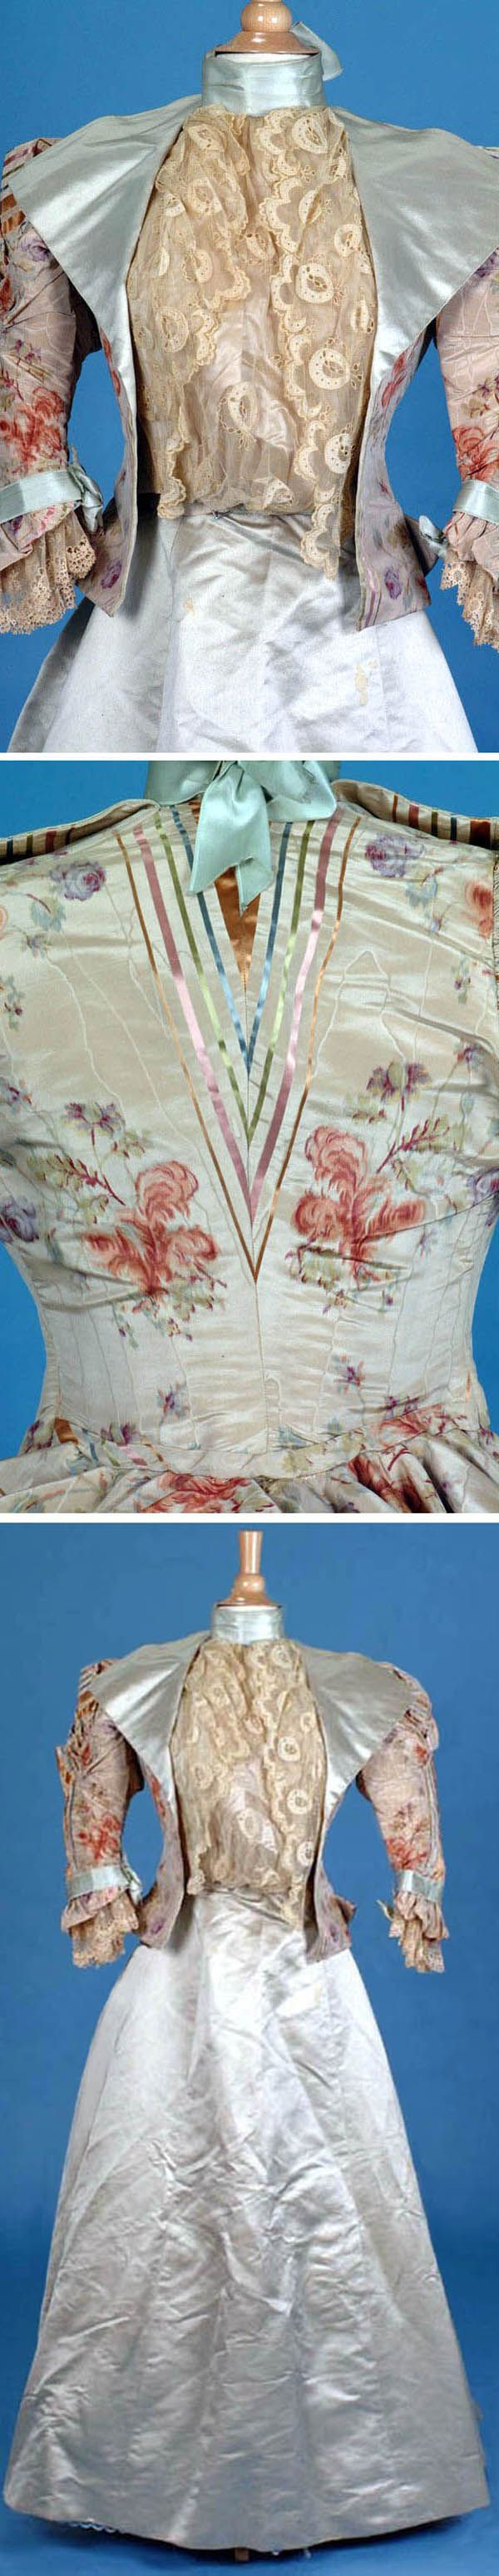 Visiting gown, A.G. McClean, Boston, ca. 1896. Silk moiré jacquard in floral pattern, with woven satin multicolored stripes. Collar has bib insertion of applied machine lace over ivory satin. Ribbon trim on sleeves; rose point lace on cuffs. Full sleeveheads that are pleated and ruched in front. Boned bodice, slightly trained skirt, which is stiffened with horsehair fabric. Trousseau.net via The Wayback Machine